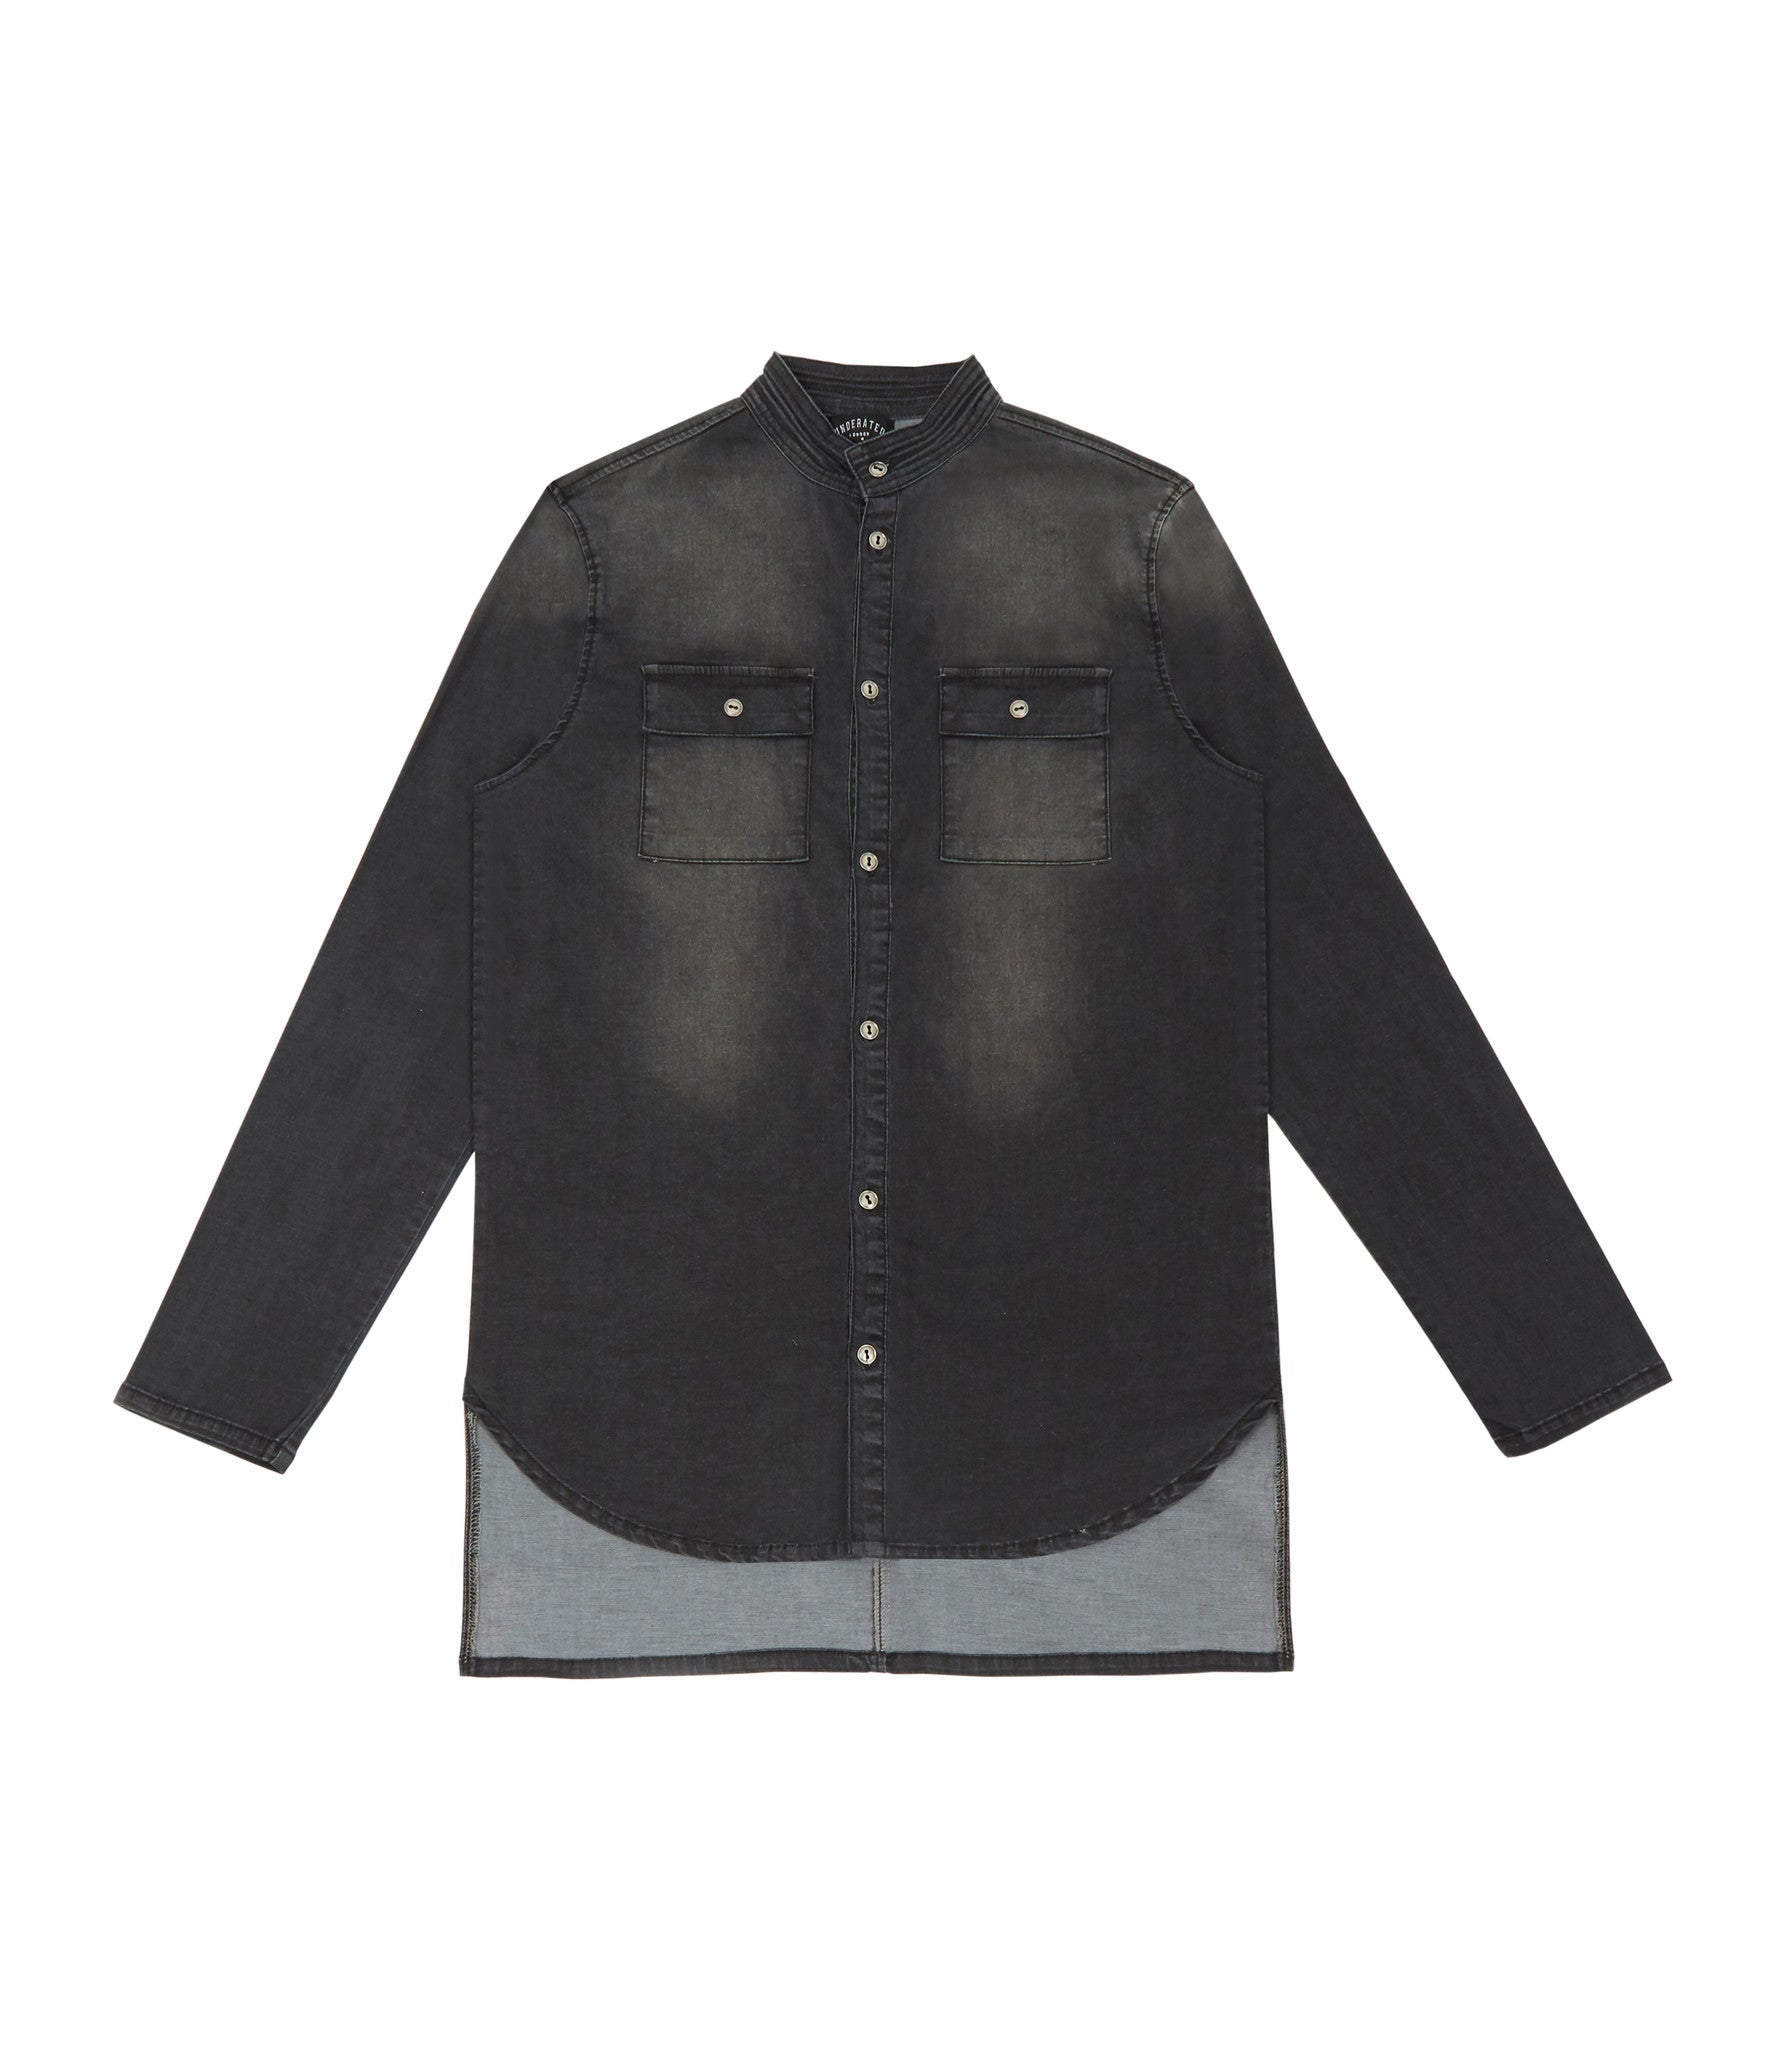 SH152 Stone Wash Denim Shirt - Black - underated london - underatedco - 1